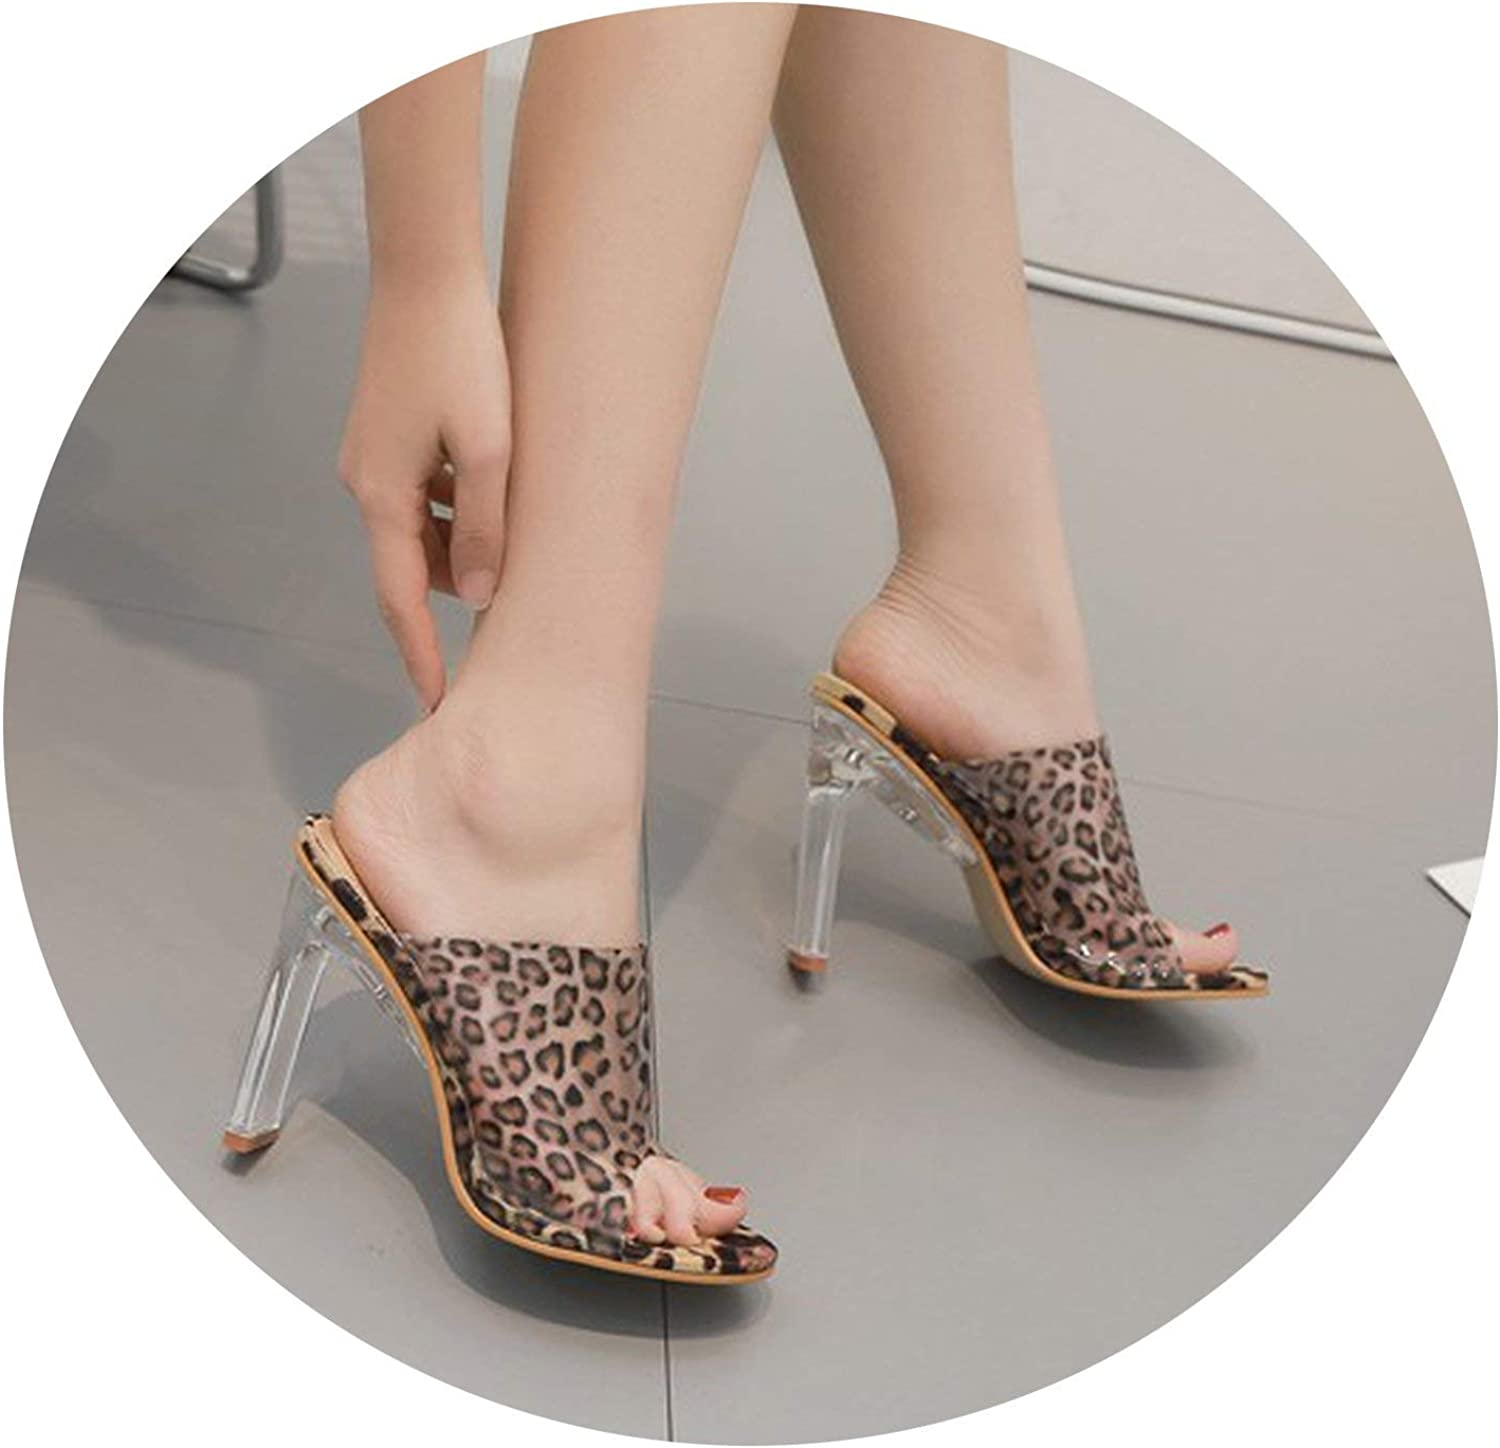 New face Women Leopard Print Clear Transparent Sandals Perspex Thick Block High Heel Summer Open Toe Sandals Fetish Party shoes